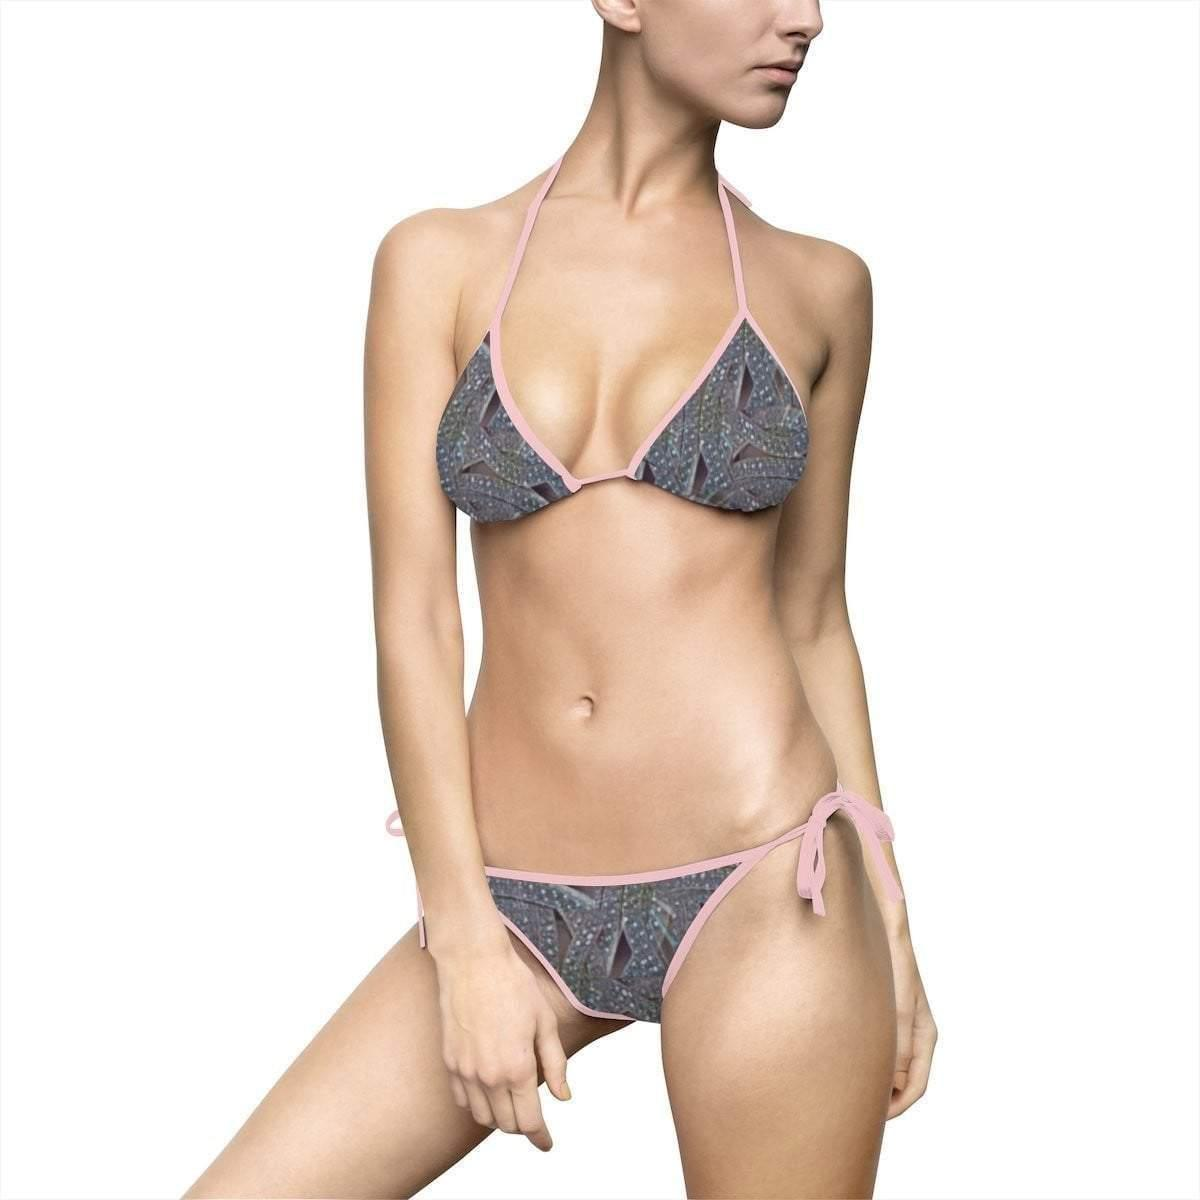 Geometric Women's Bikini Swimsuit Voluptuous (+) Size Available - Tie-Fly